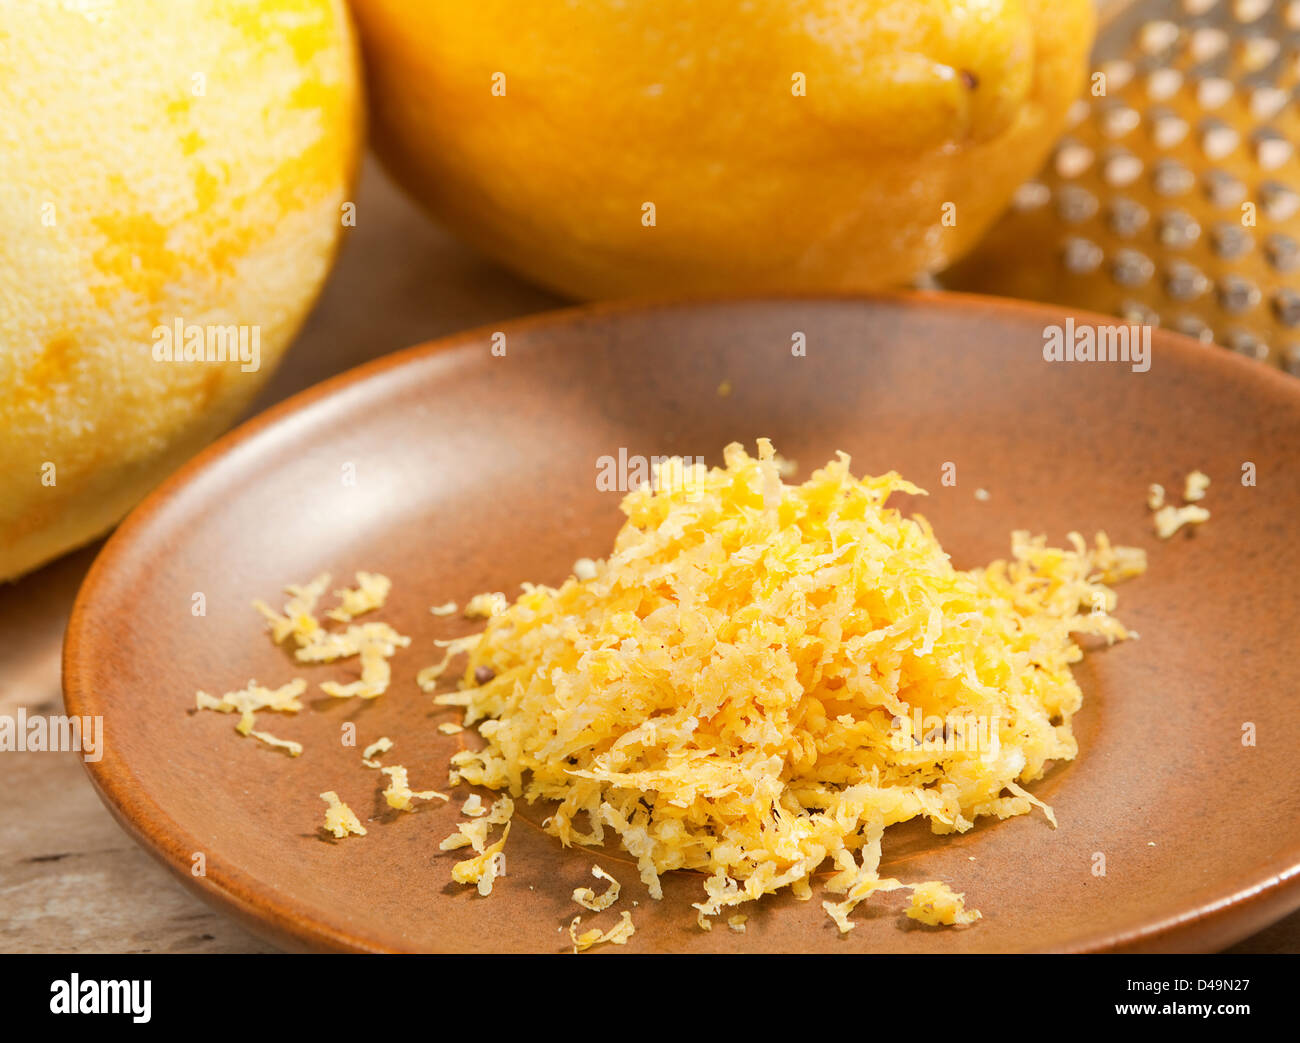 Lemon ingeredient zest on brown plate - Stock Image